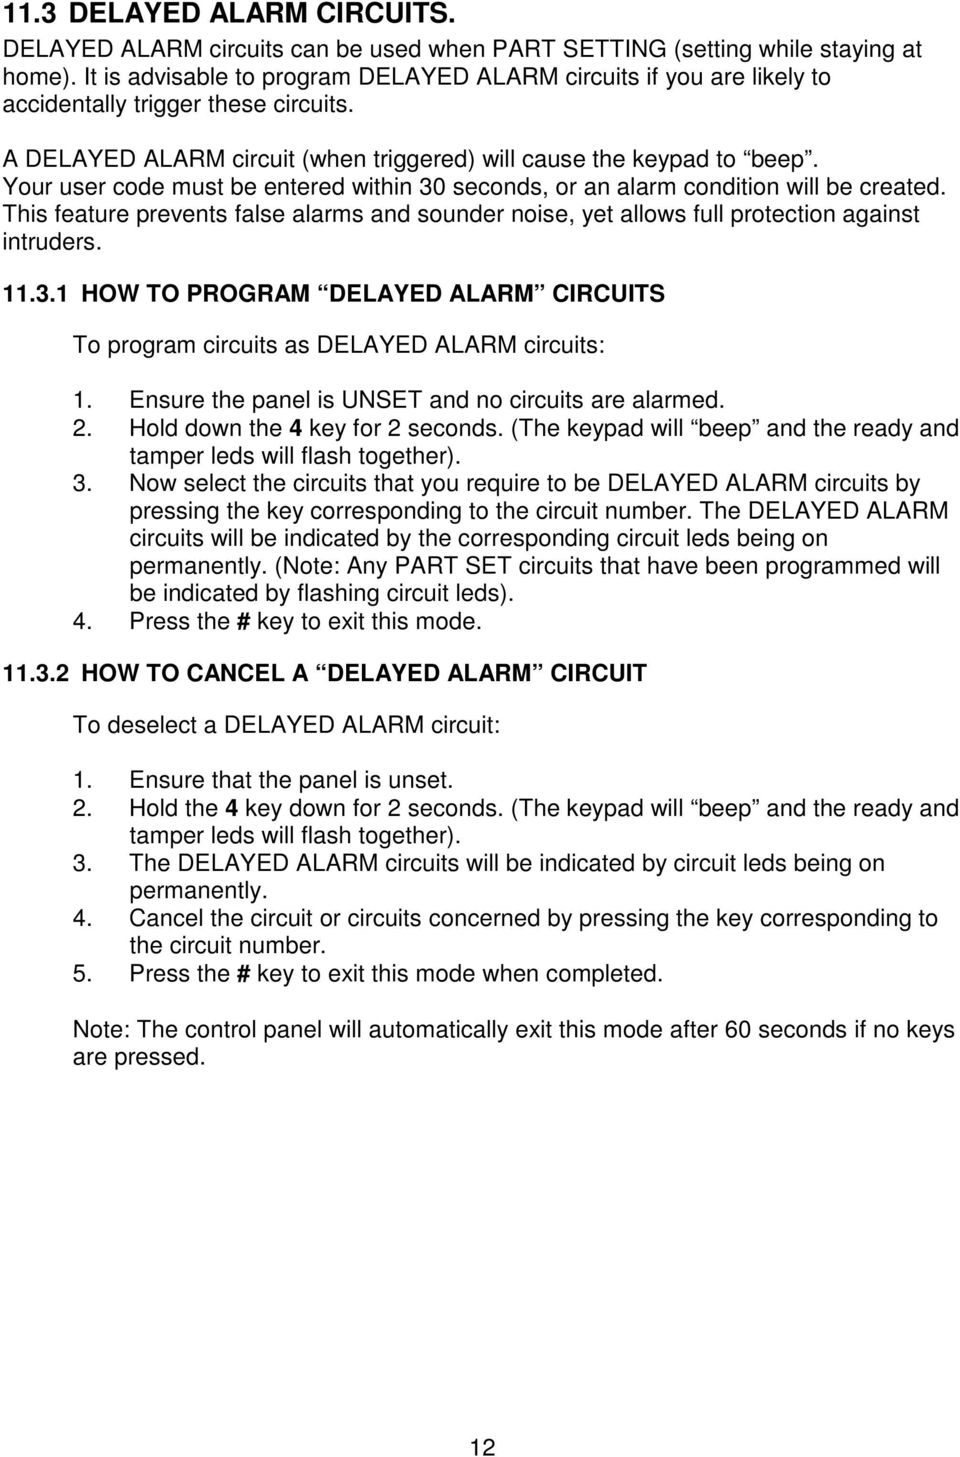 Your user code must be entered within 30 seconds, or an alarm condition will be created. This feature prevents false alarms and sounder noise, yet allows full protection against intruders. 11.3.1 HOW TO PROGRAM DELAYED ALARM CIRCUITS To program circuits as DELAYED ALARM circuits: 1.